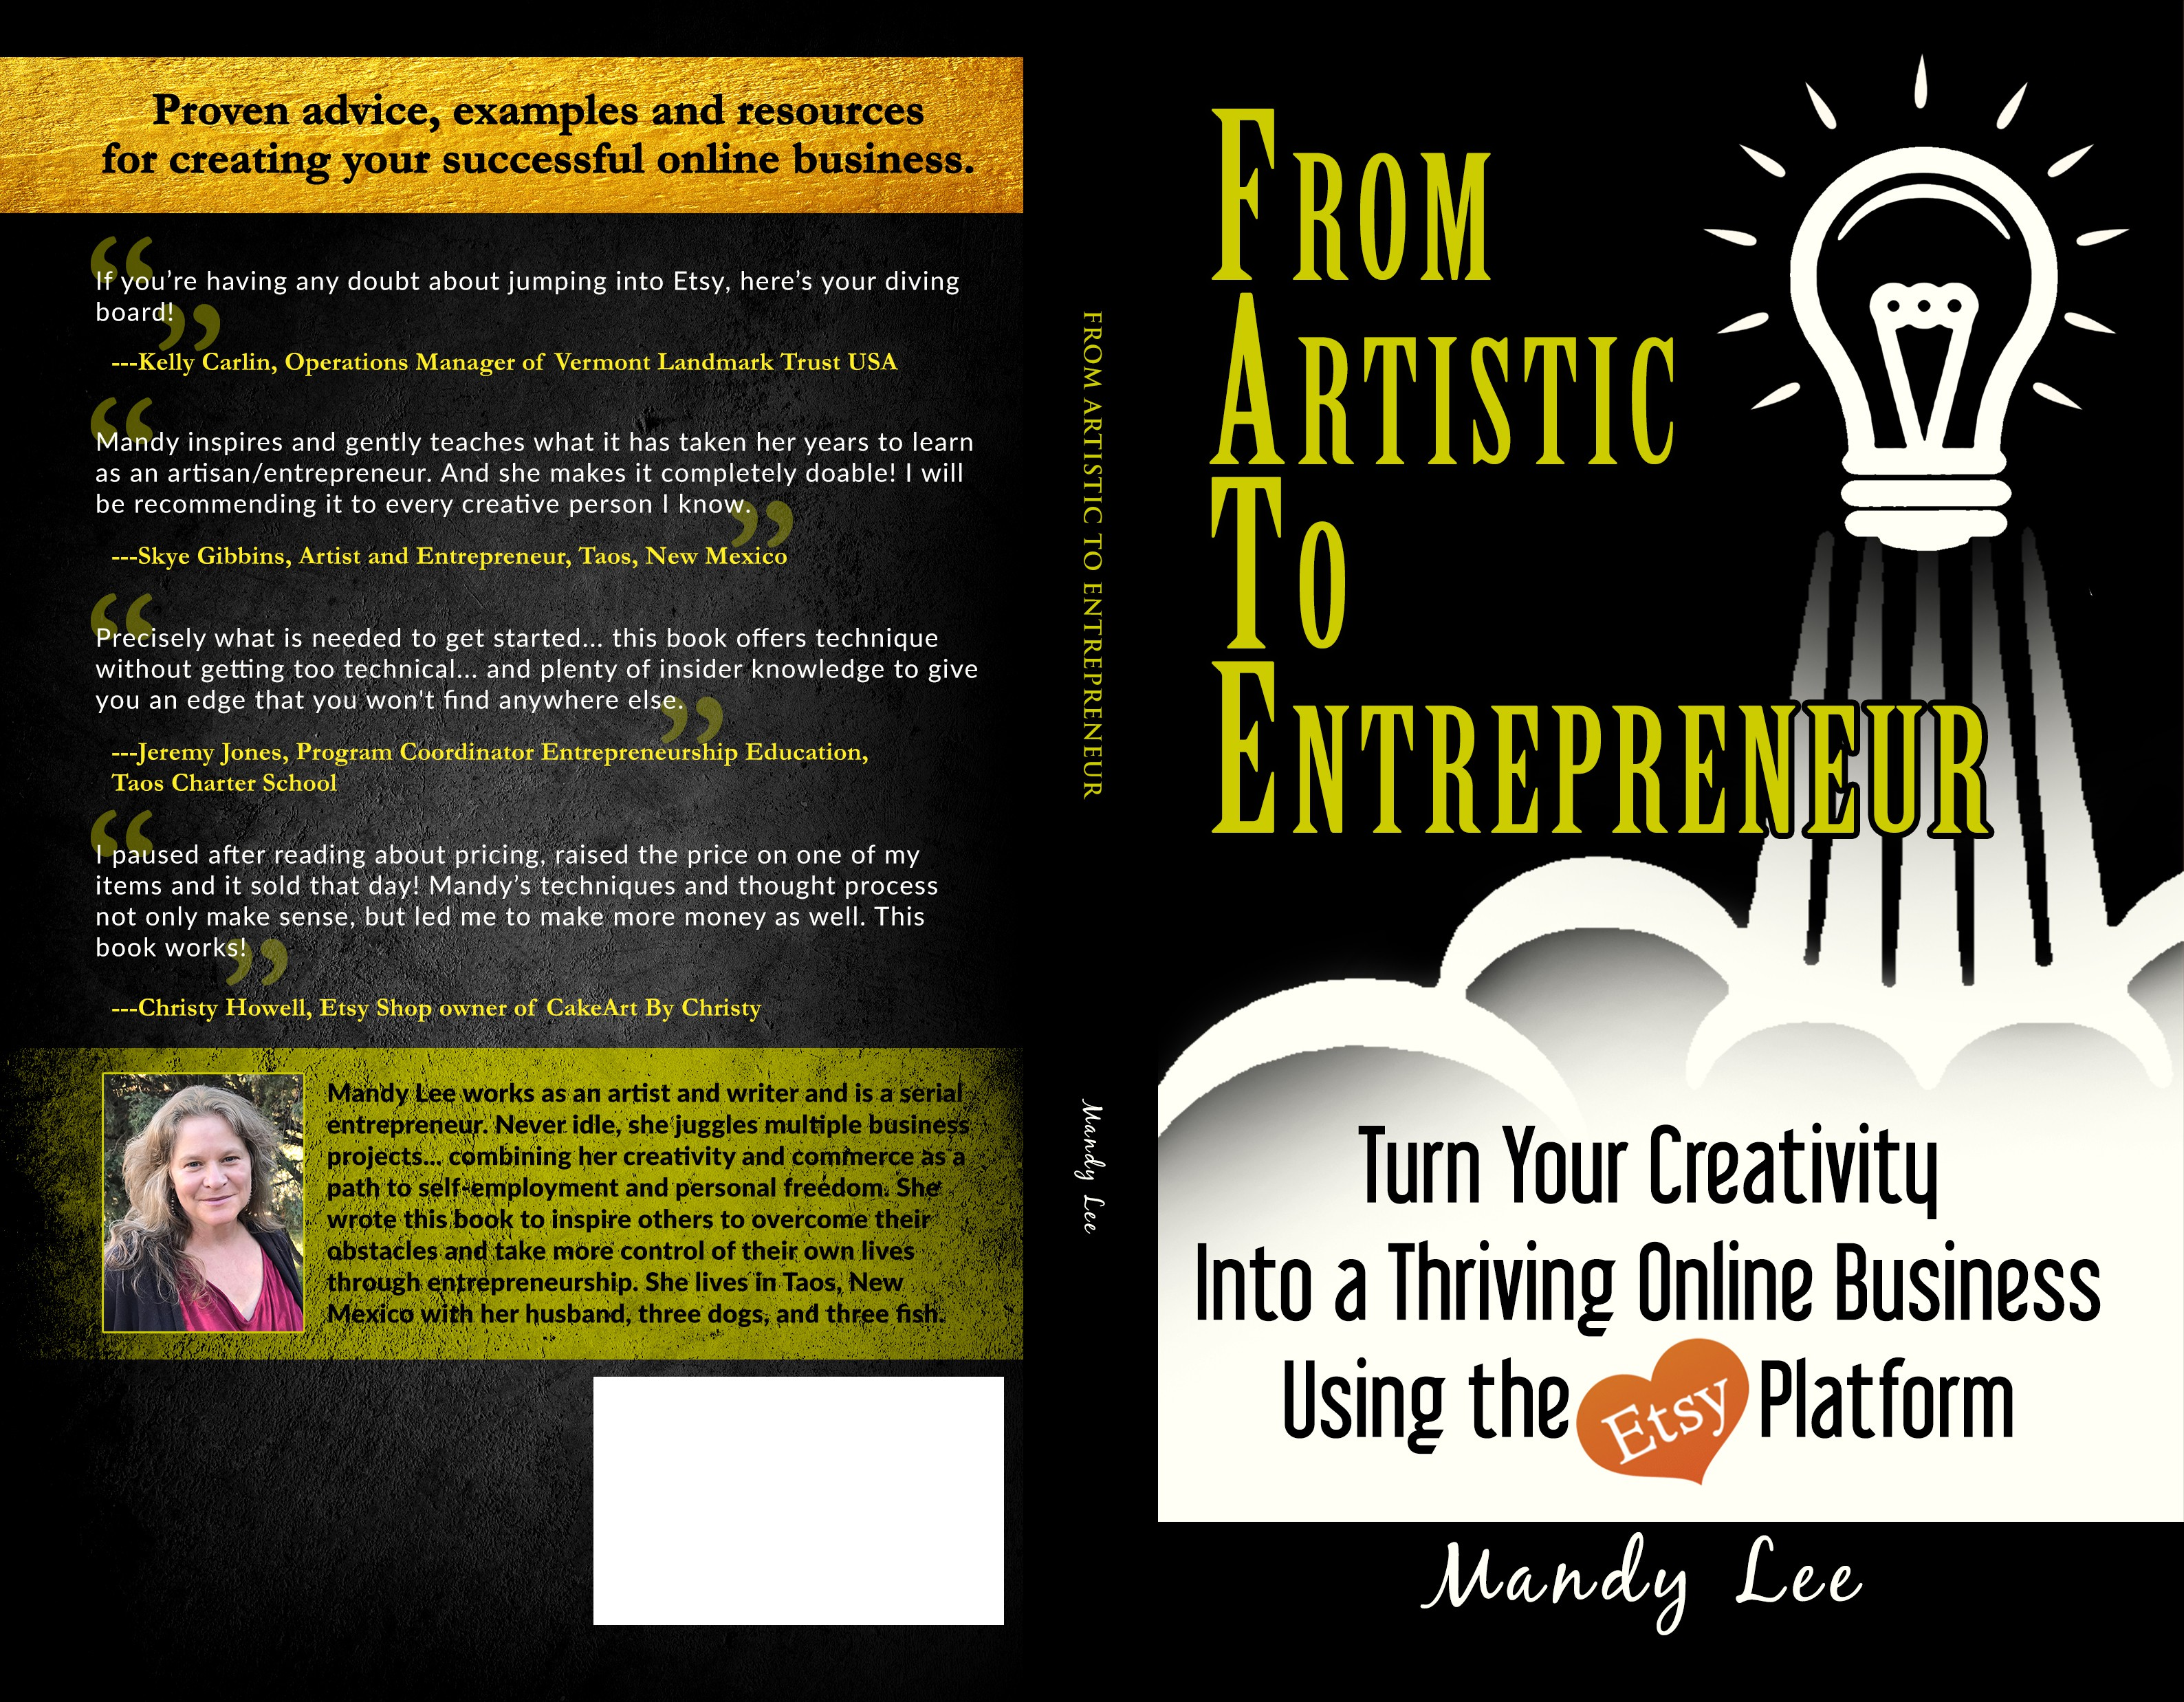 From Artistic to Entrepreneur guidebook needs engaging cover!